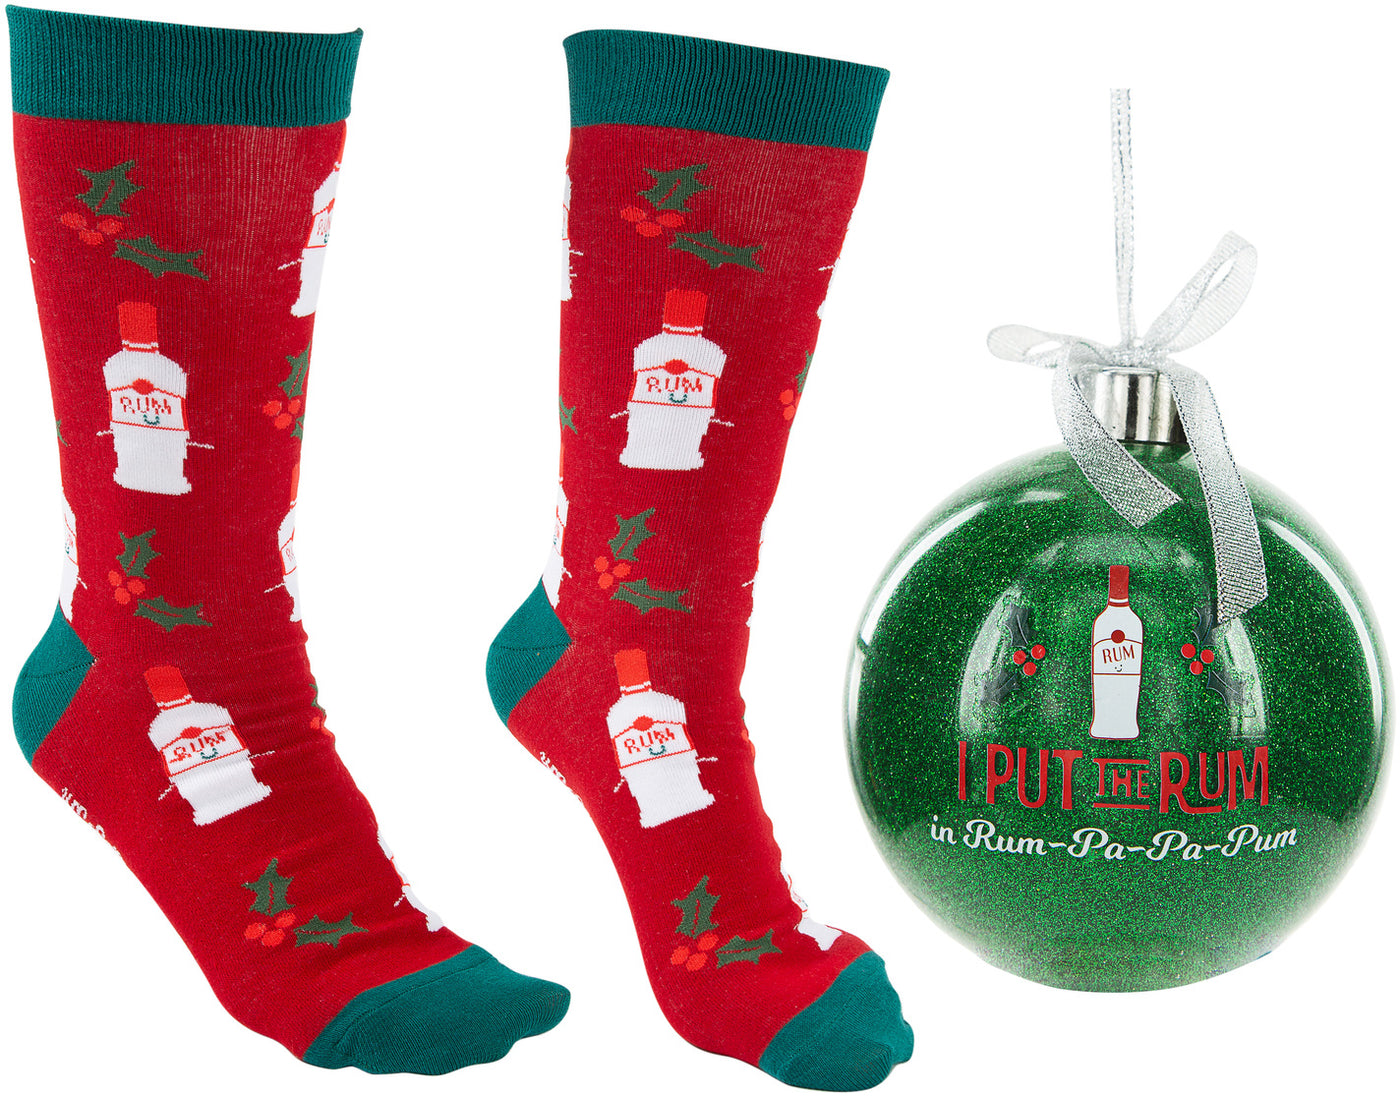 "RUM-PA-PA-PUM - 4"" Ornament with Unisex Holiday Socks"